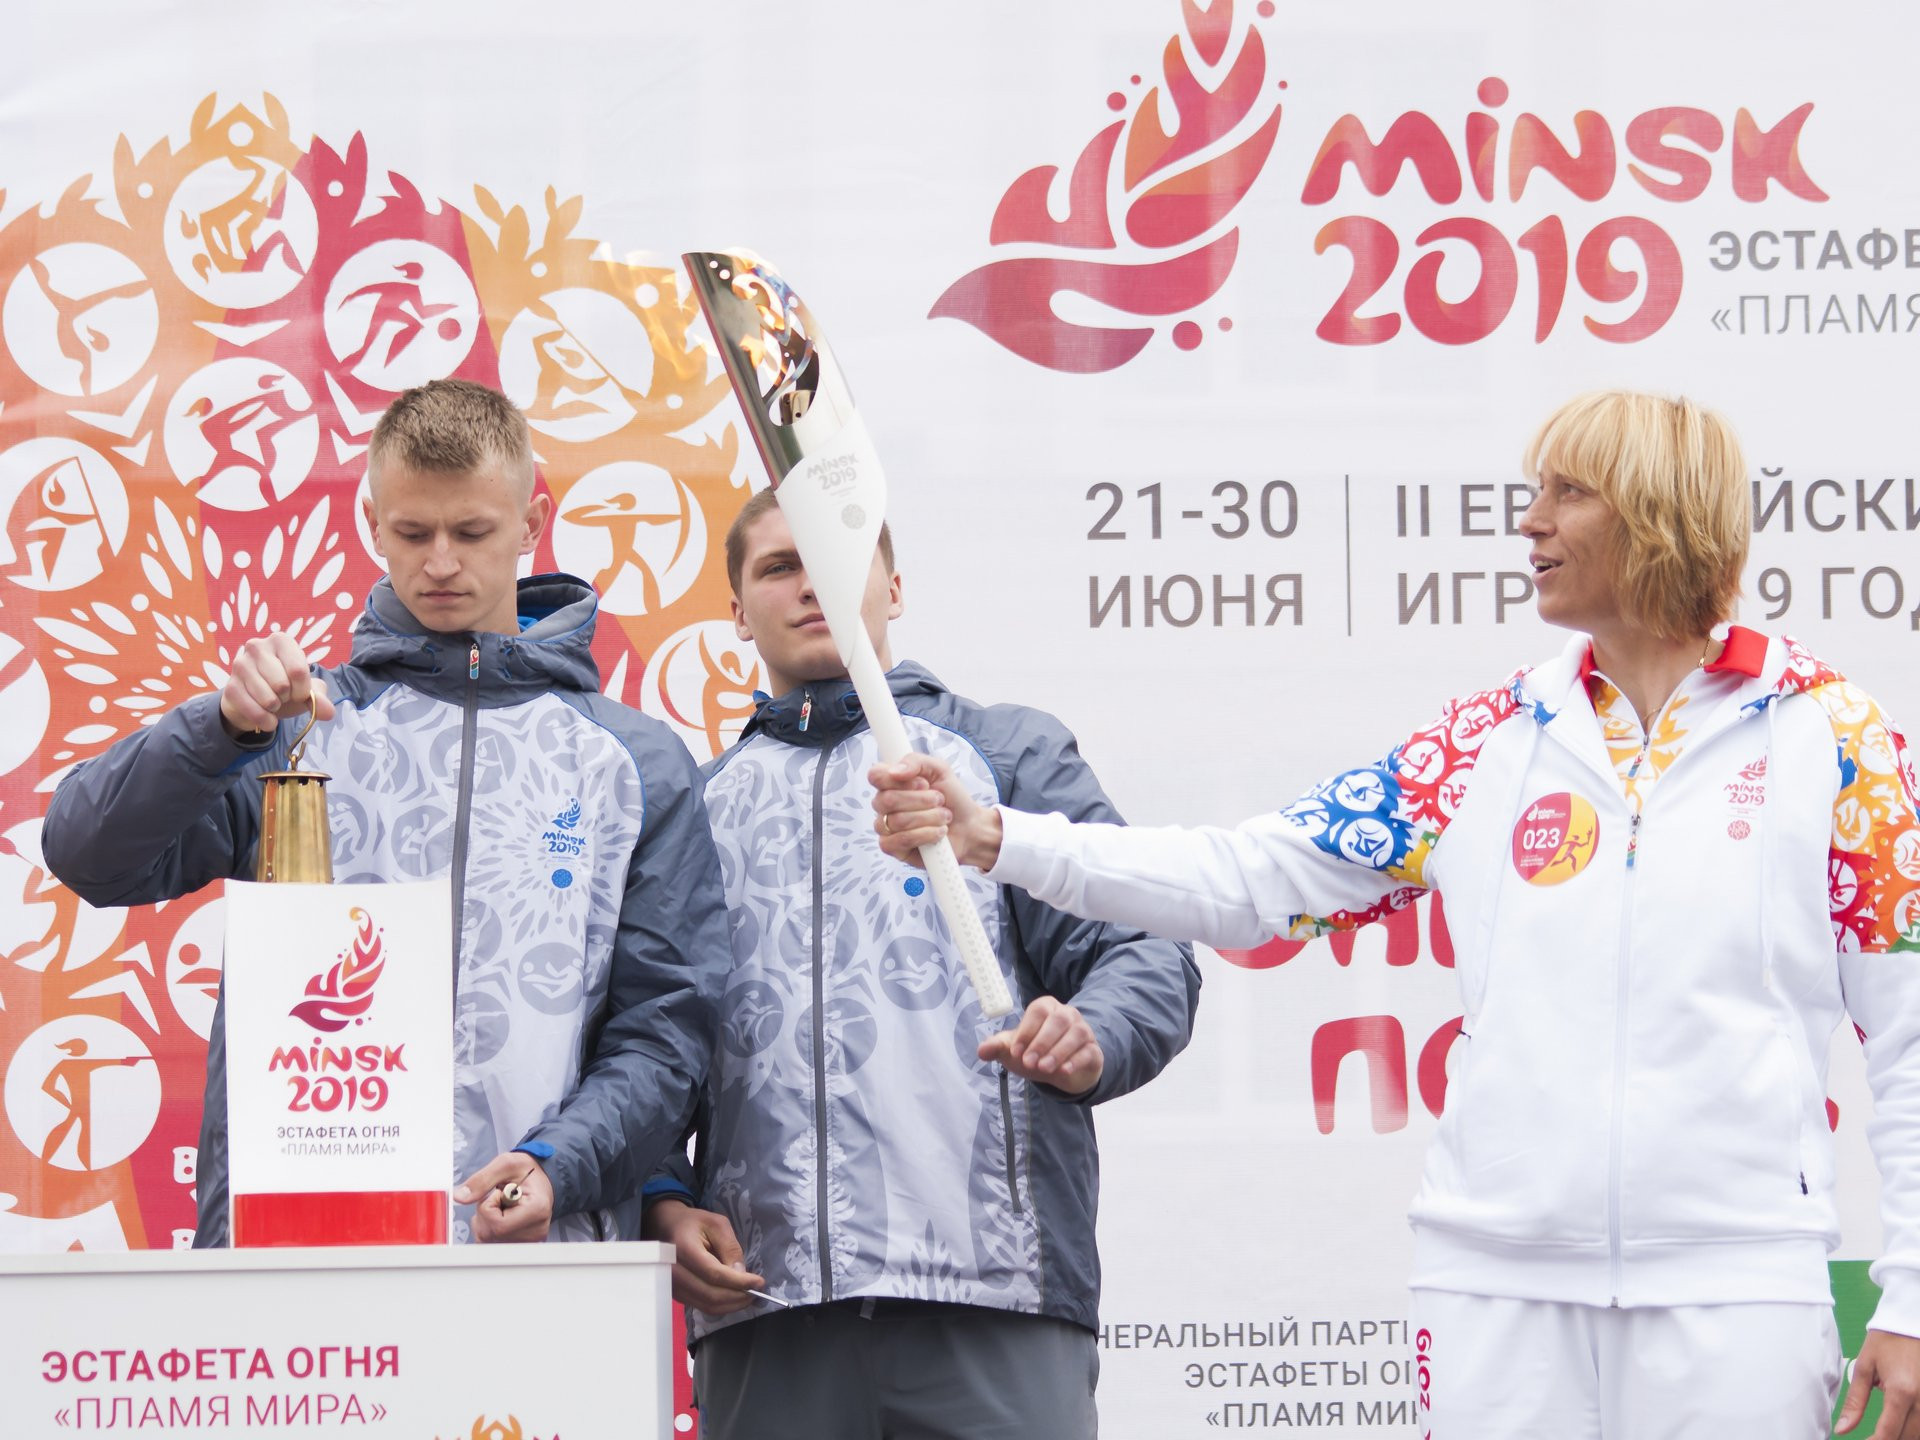 The 2019 European Games in Minsk will feature heavily on the agenda at the Seminar ©Getty Images